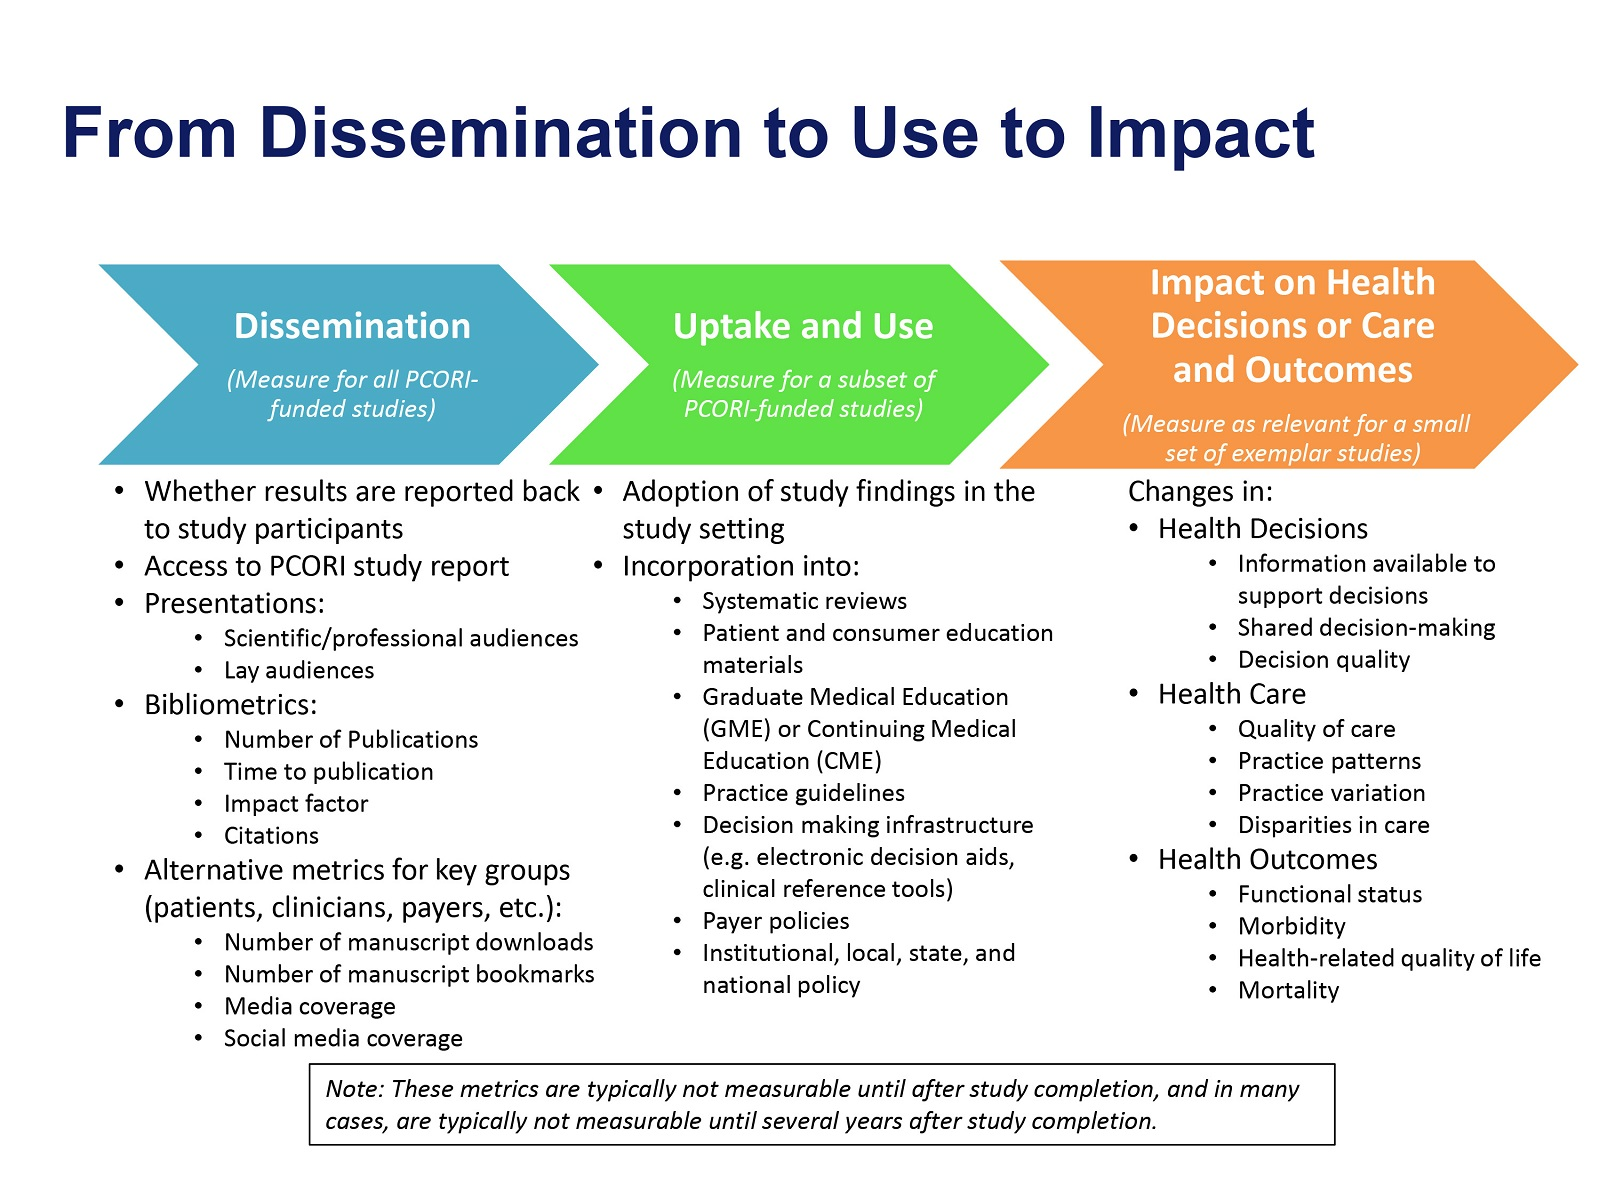 From Dissemination to Use to Impact - Evaluation